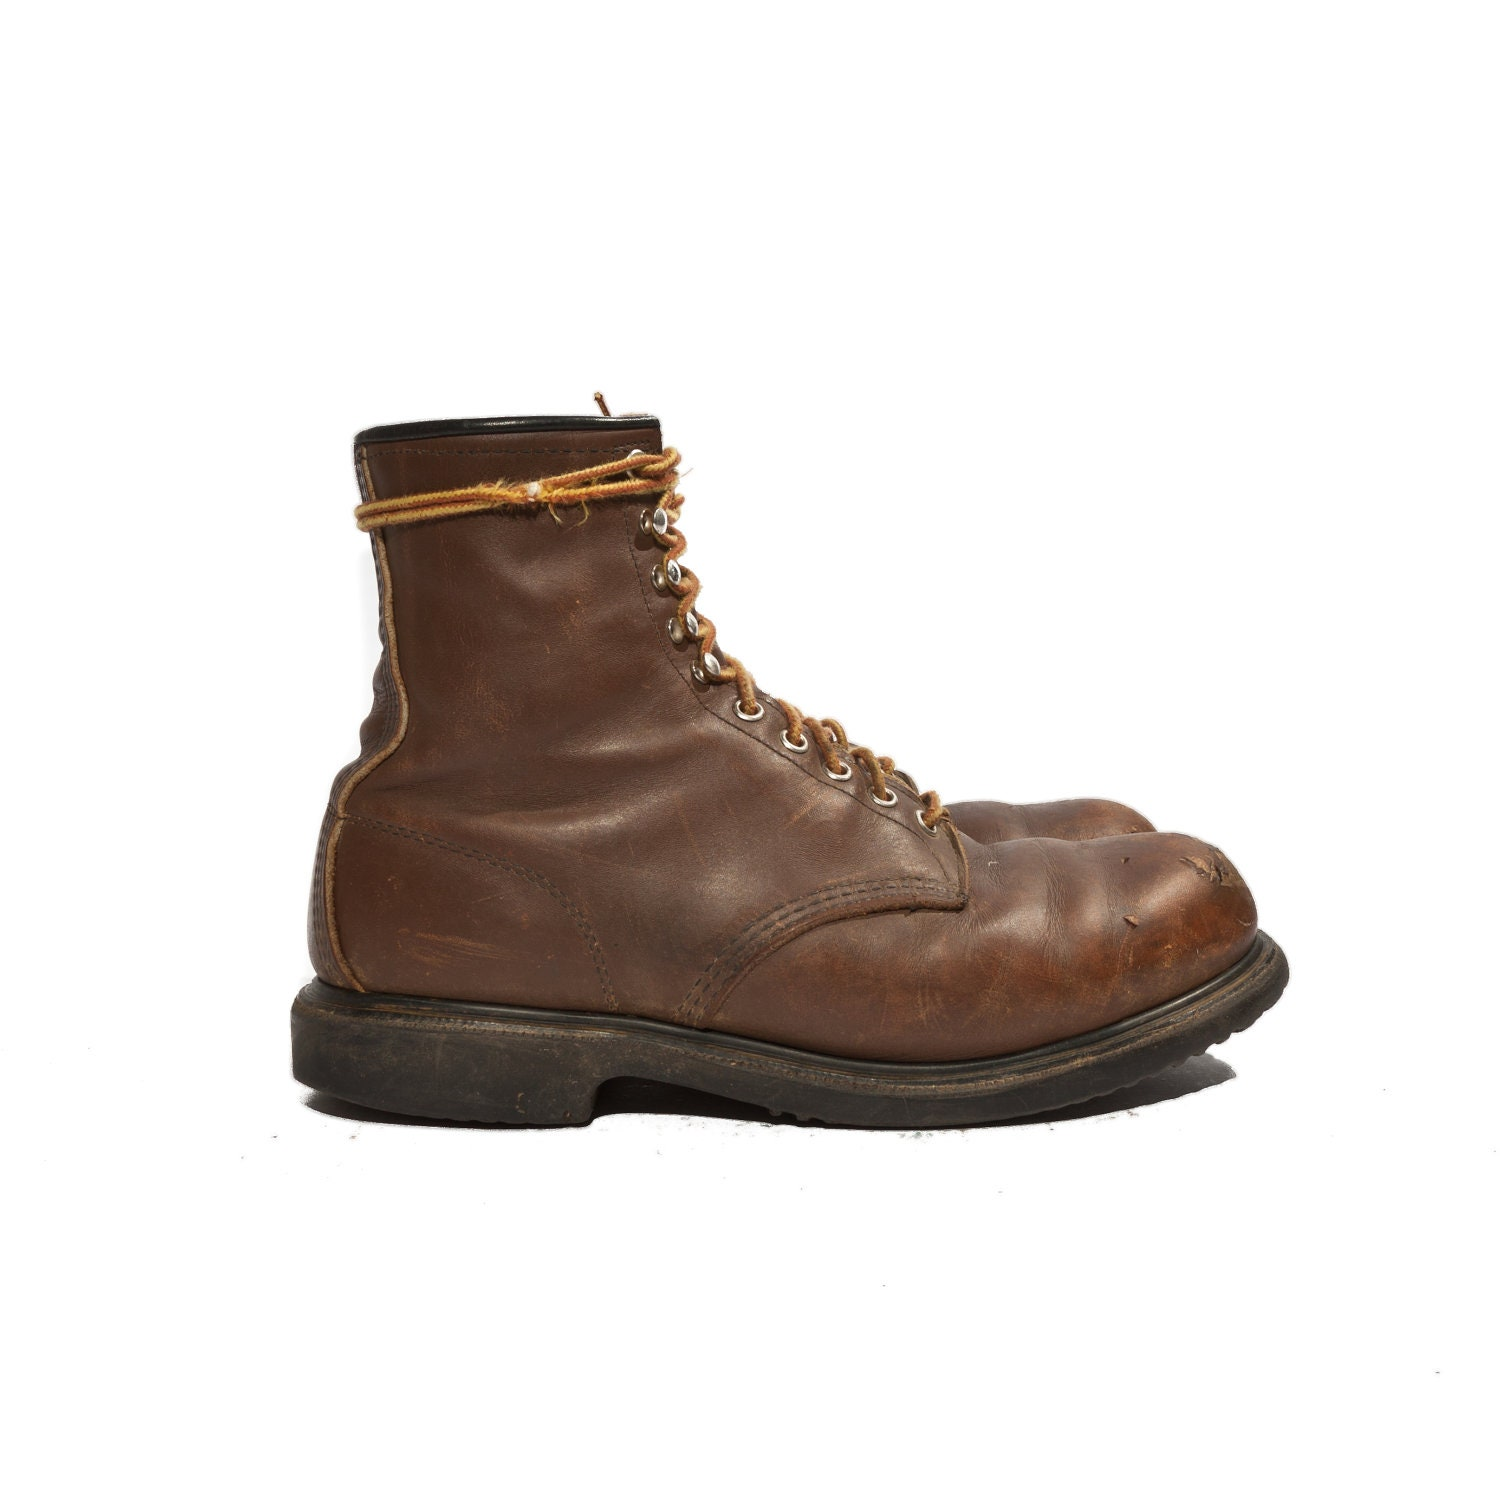 Vintage Red Wing Boots Steel Toe Men's Lace Up Ankle Boots